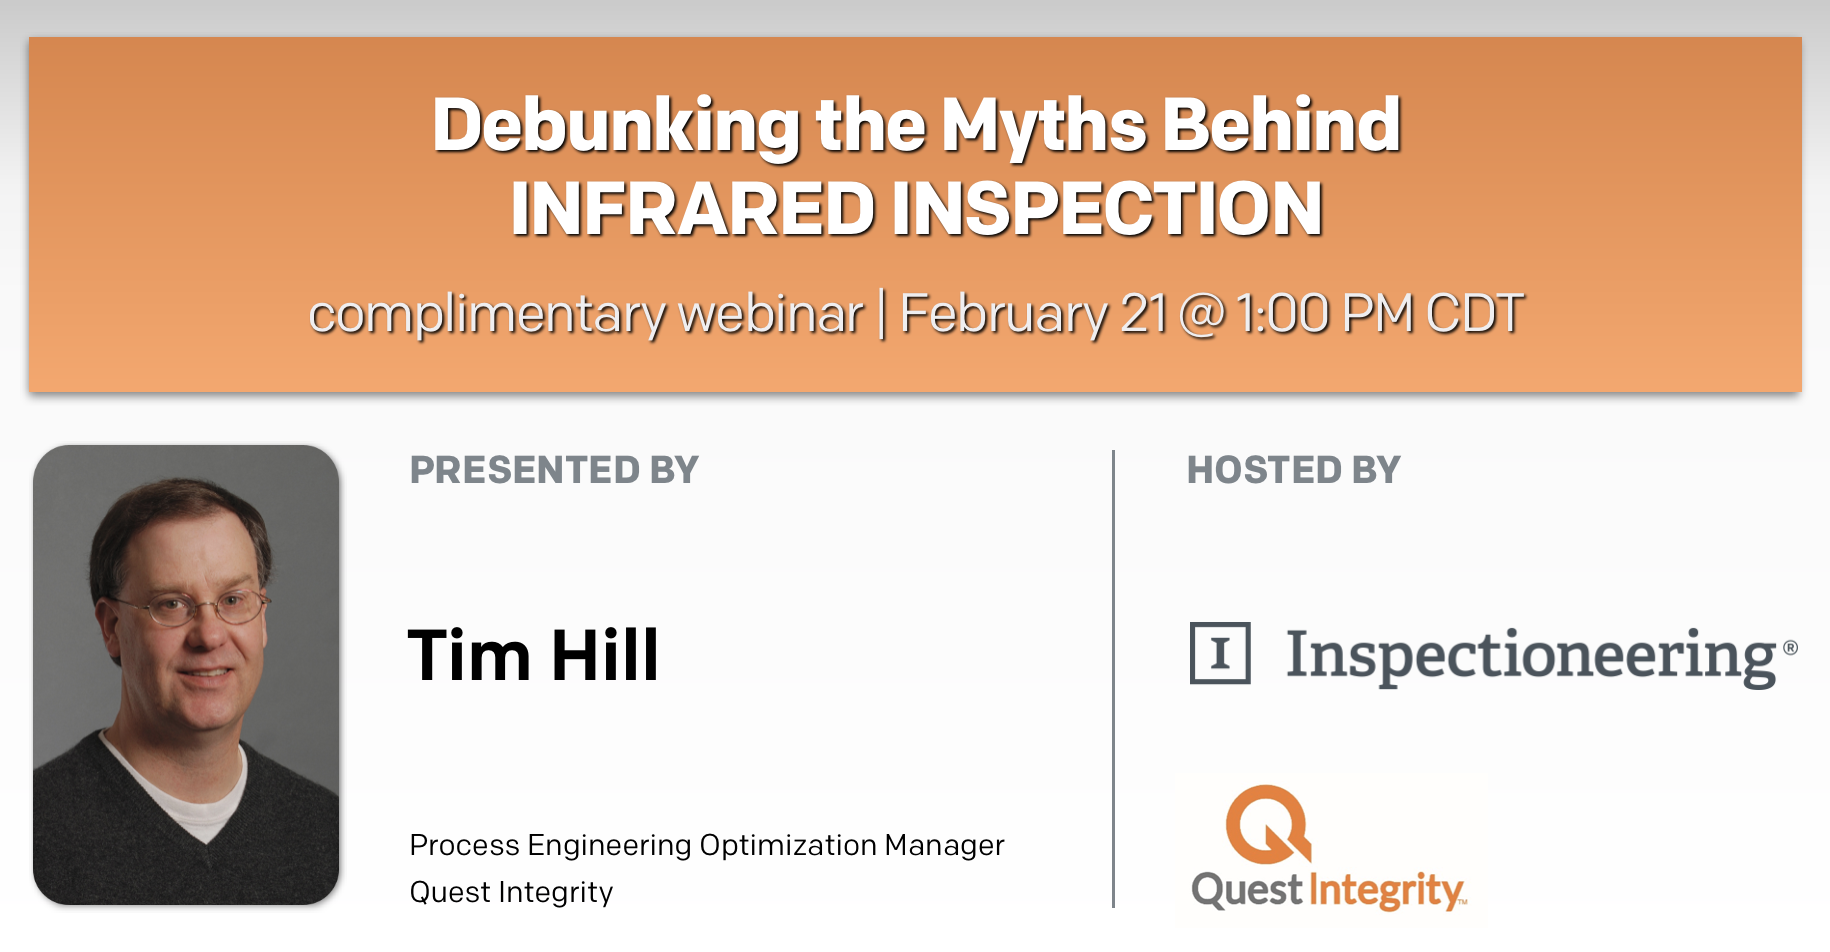 Debunking the Myths Behind Infrared Inspection